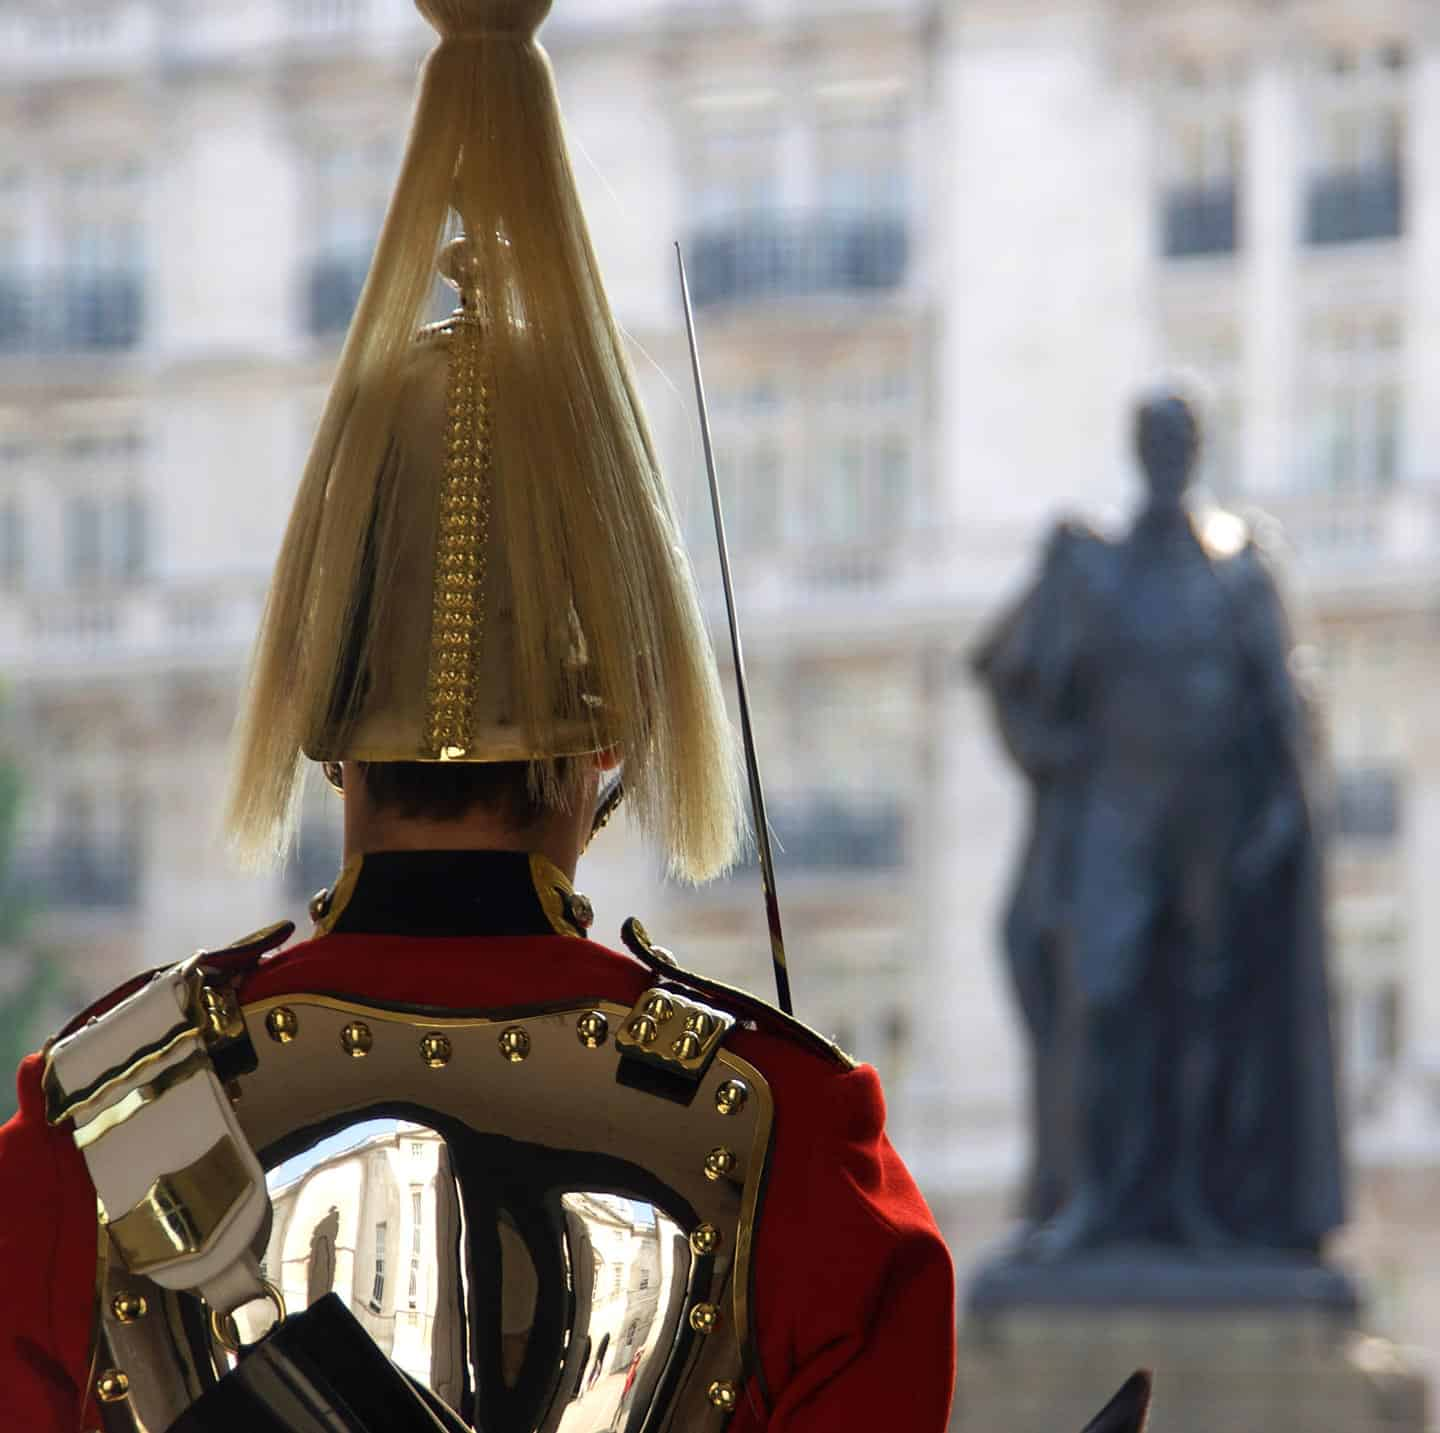 Image of a Guardsman on duty at Horse Guards Parade, looking across Whitehall